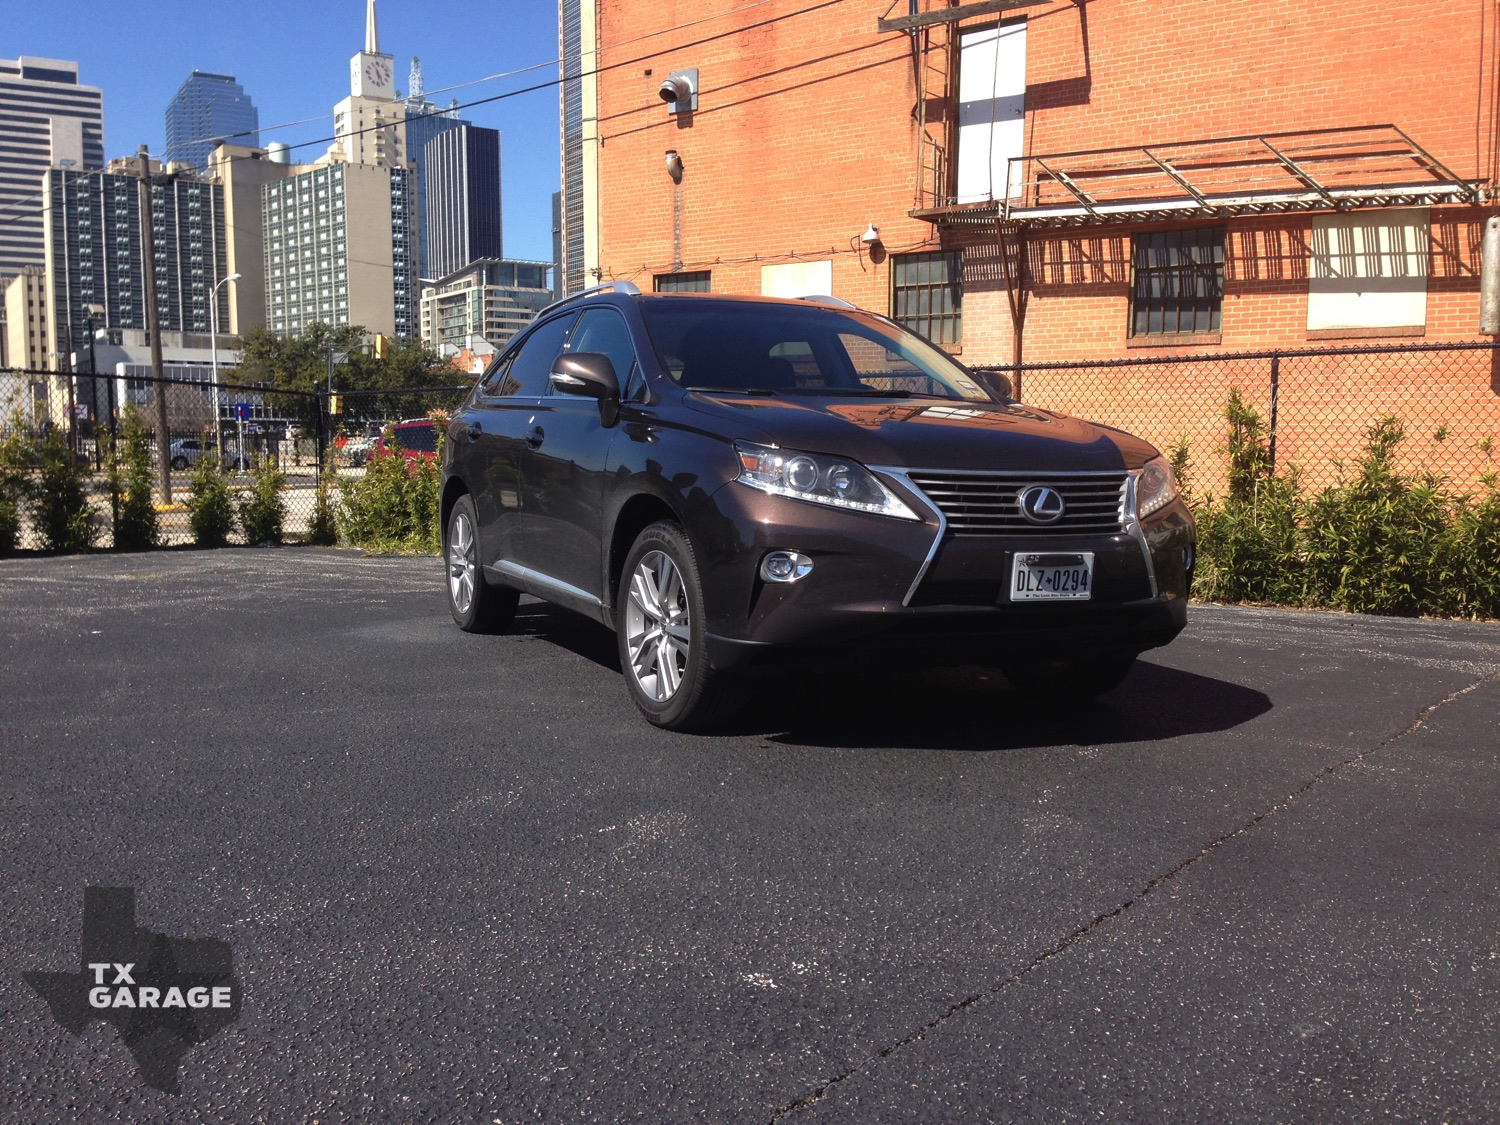 The 2015 Lexus RX 350